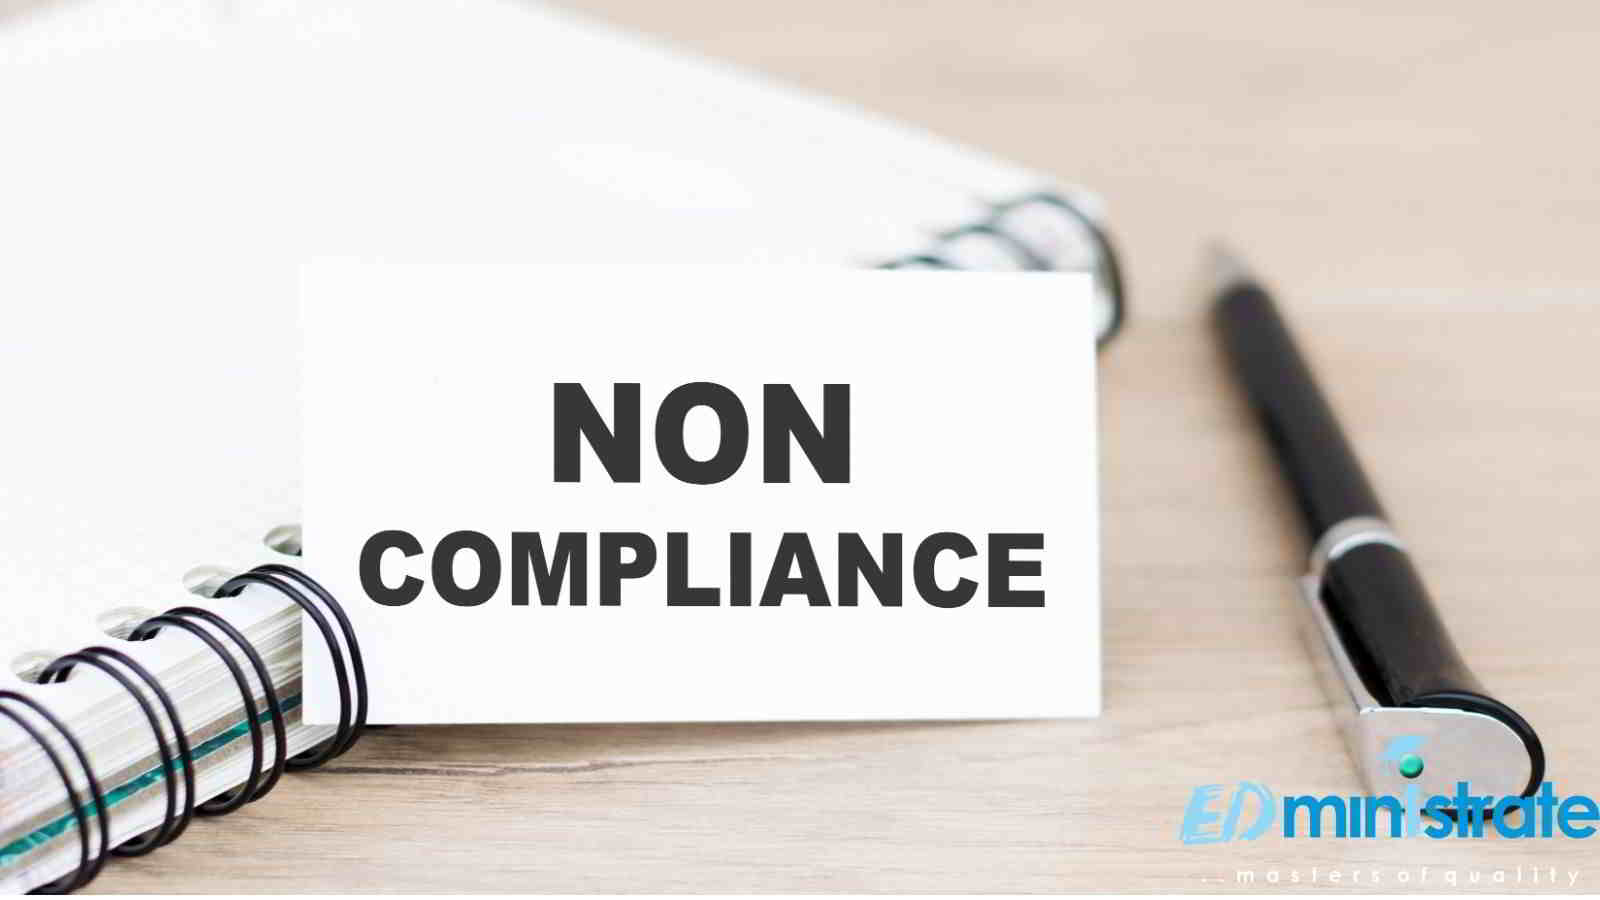 Common non-compliances found in TAS's and how to rectify them